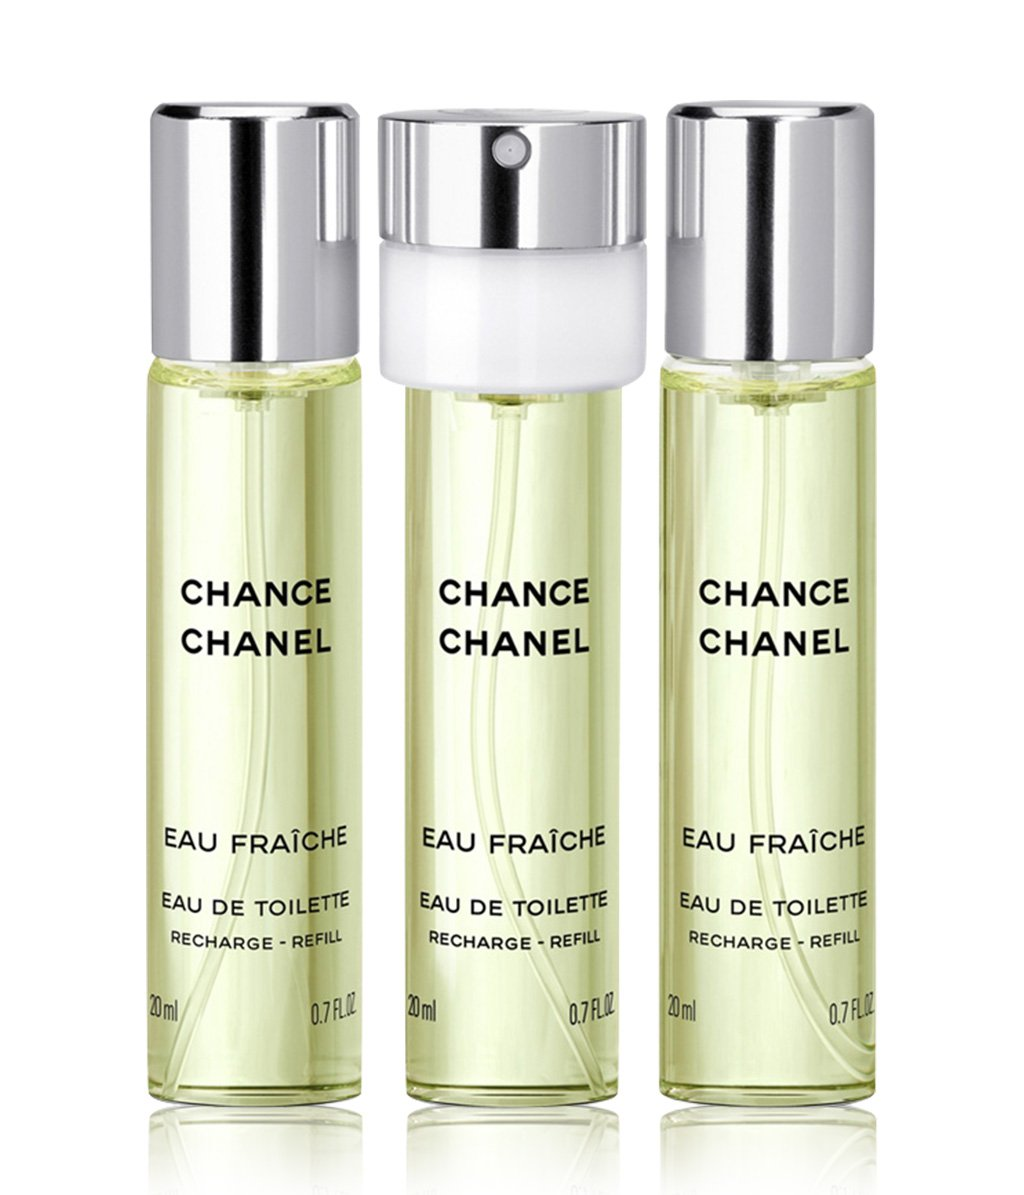 chanel chance eau fraiche spray bestellen flaconi. Black Bedroom Furniture Sets. Home Design Ideas